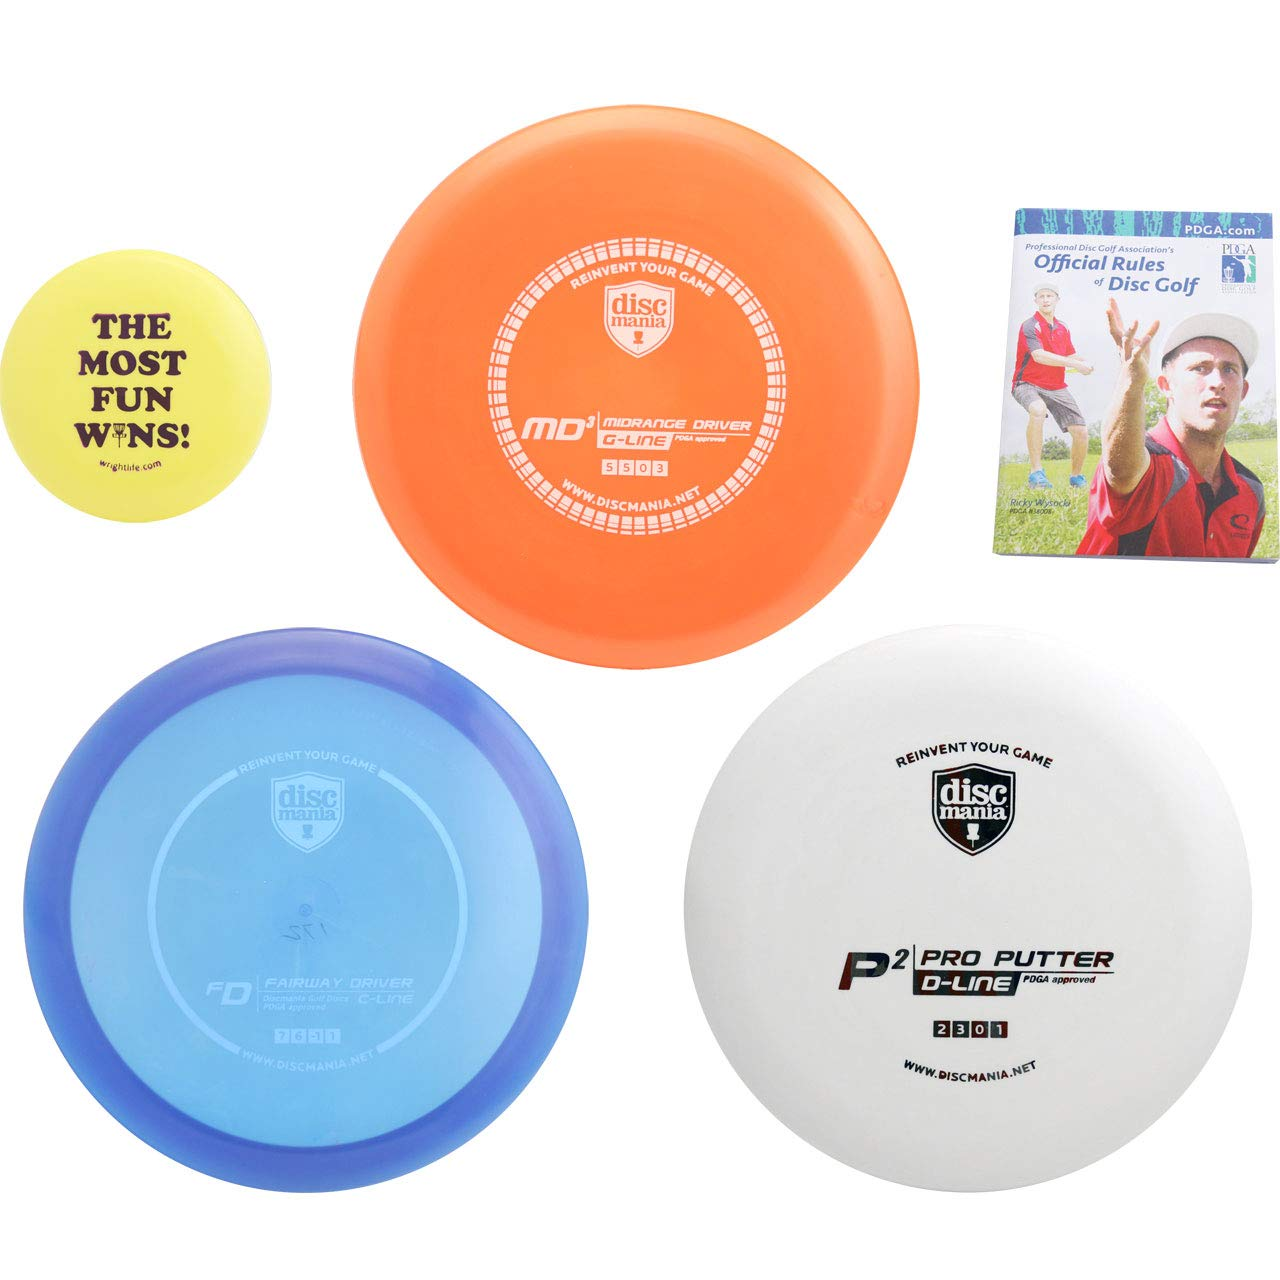 Discmania Complete Disc Golf Variety Gift Set - Driver, Mid-Range & Putter + Mini Marker Disc, Rules (5 Items, Colors May Vary) (3 Discs (Driver, mid-Range, Putter, Extras))